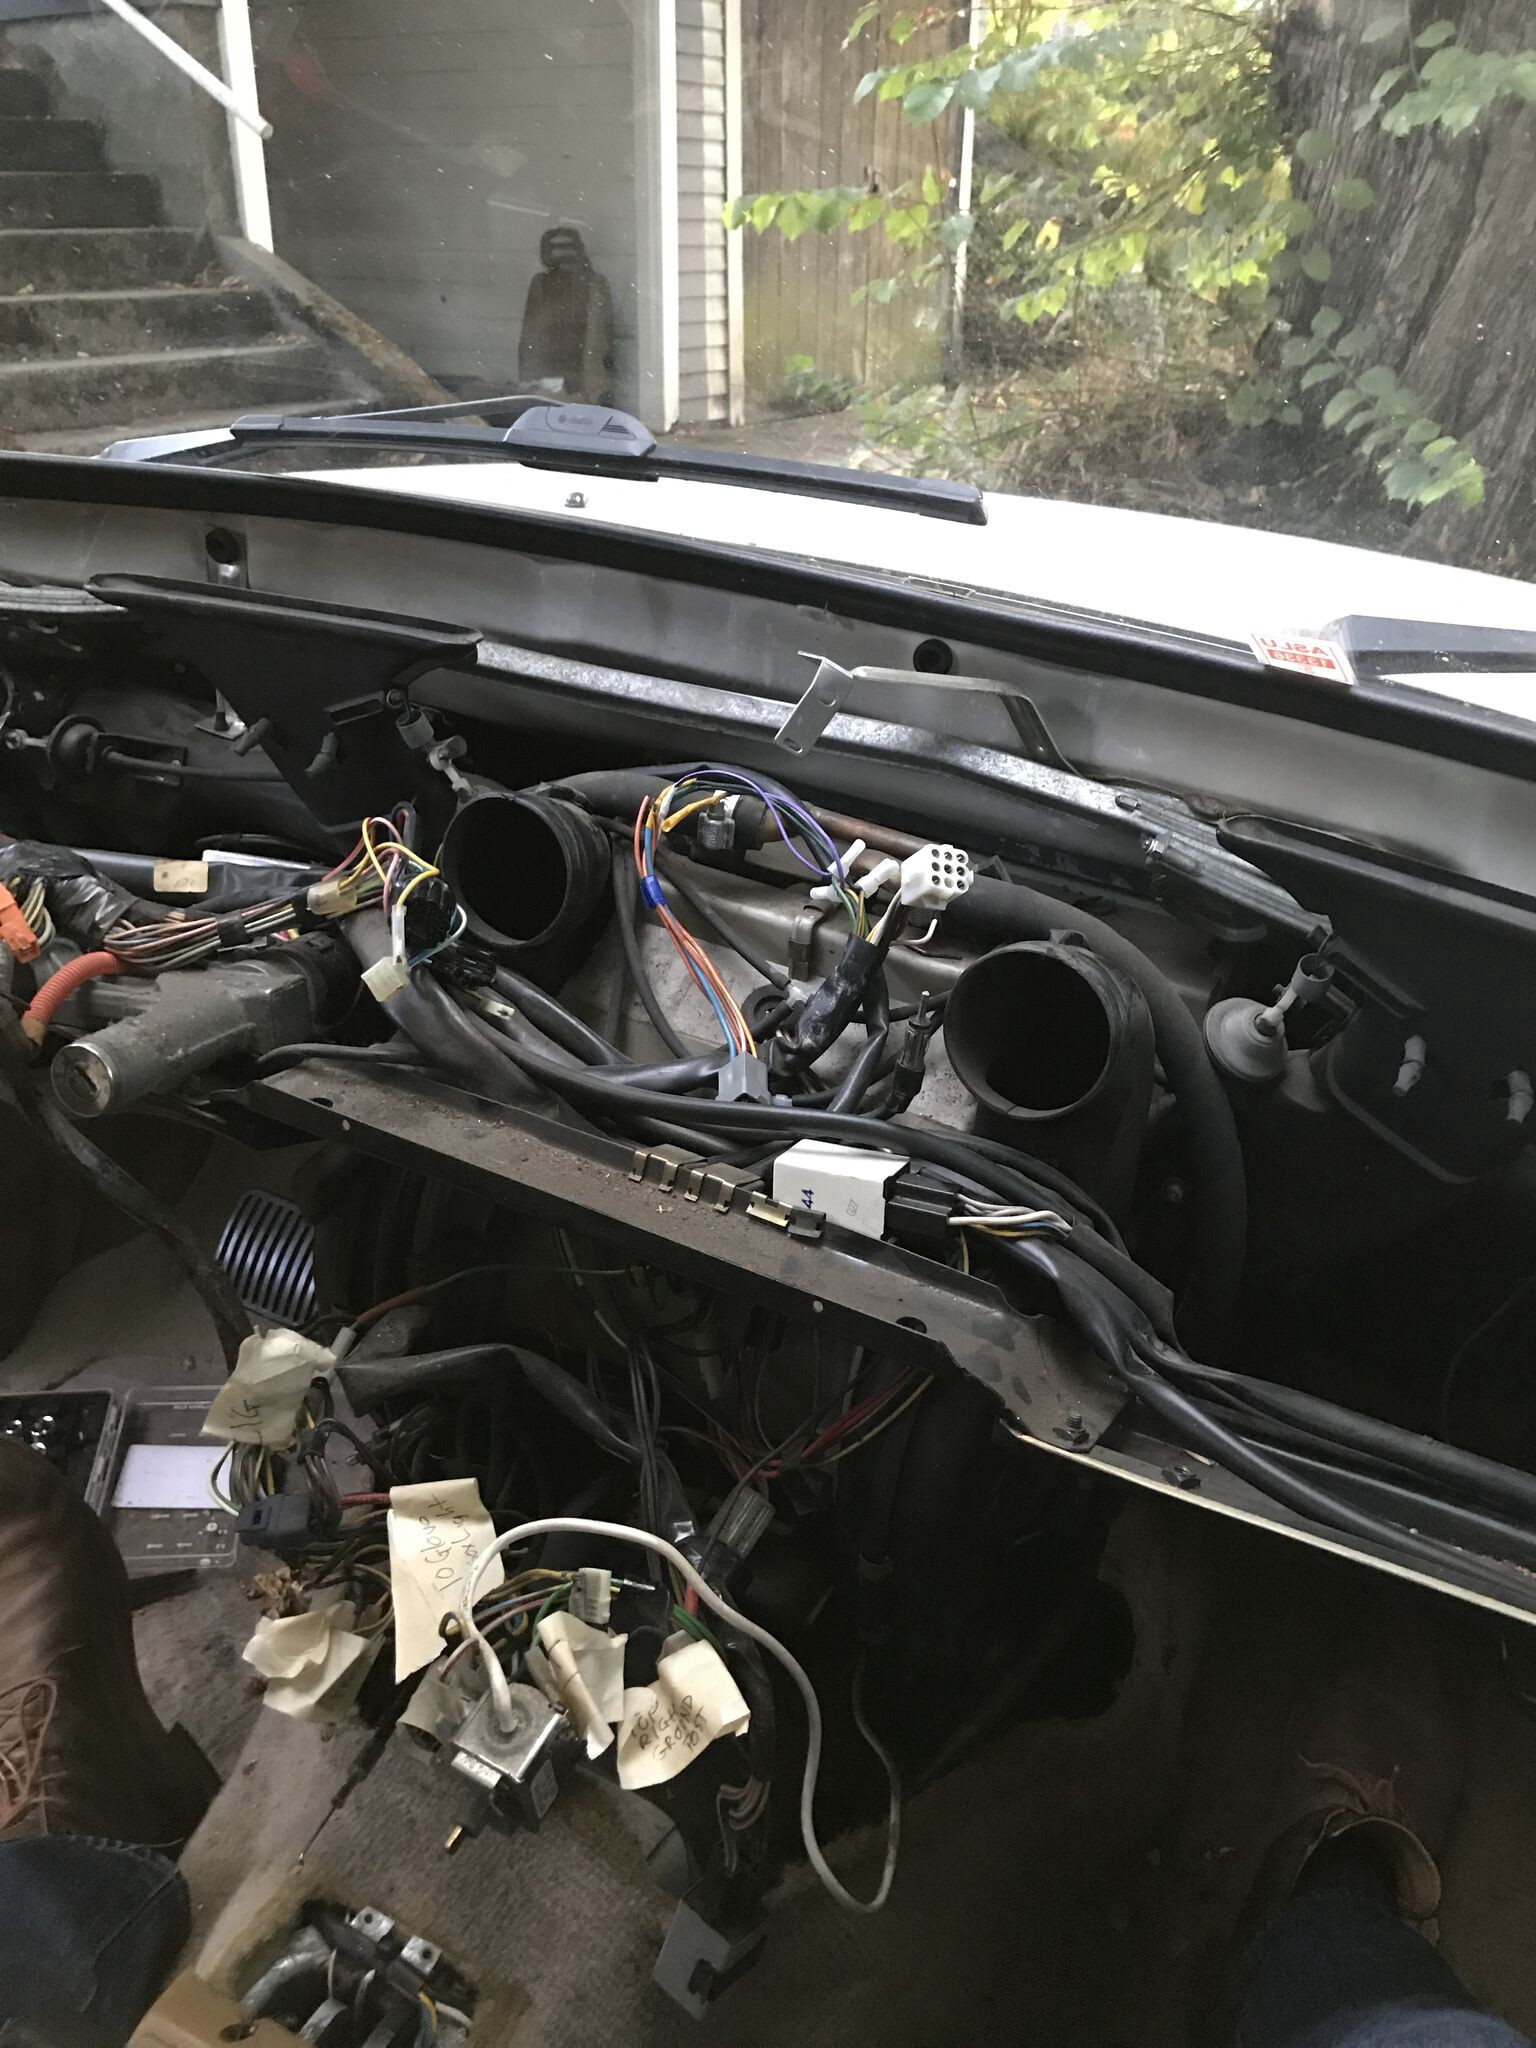 I Replaced The Blower Motor In My 1990 Volvo 240 Dl 1984 Radio Wiring Schematic Removing Dash And Center Console Is Just Beginning